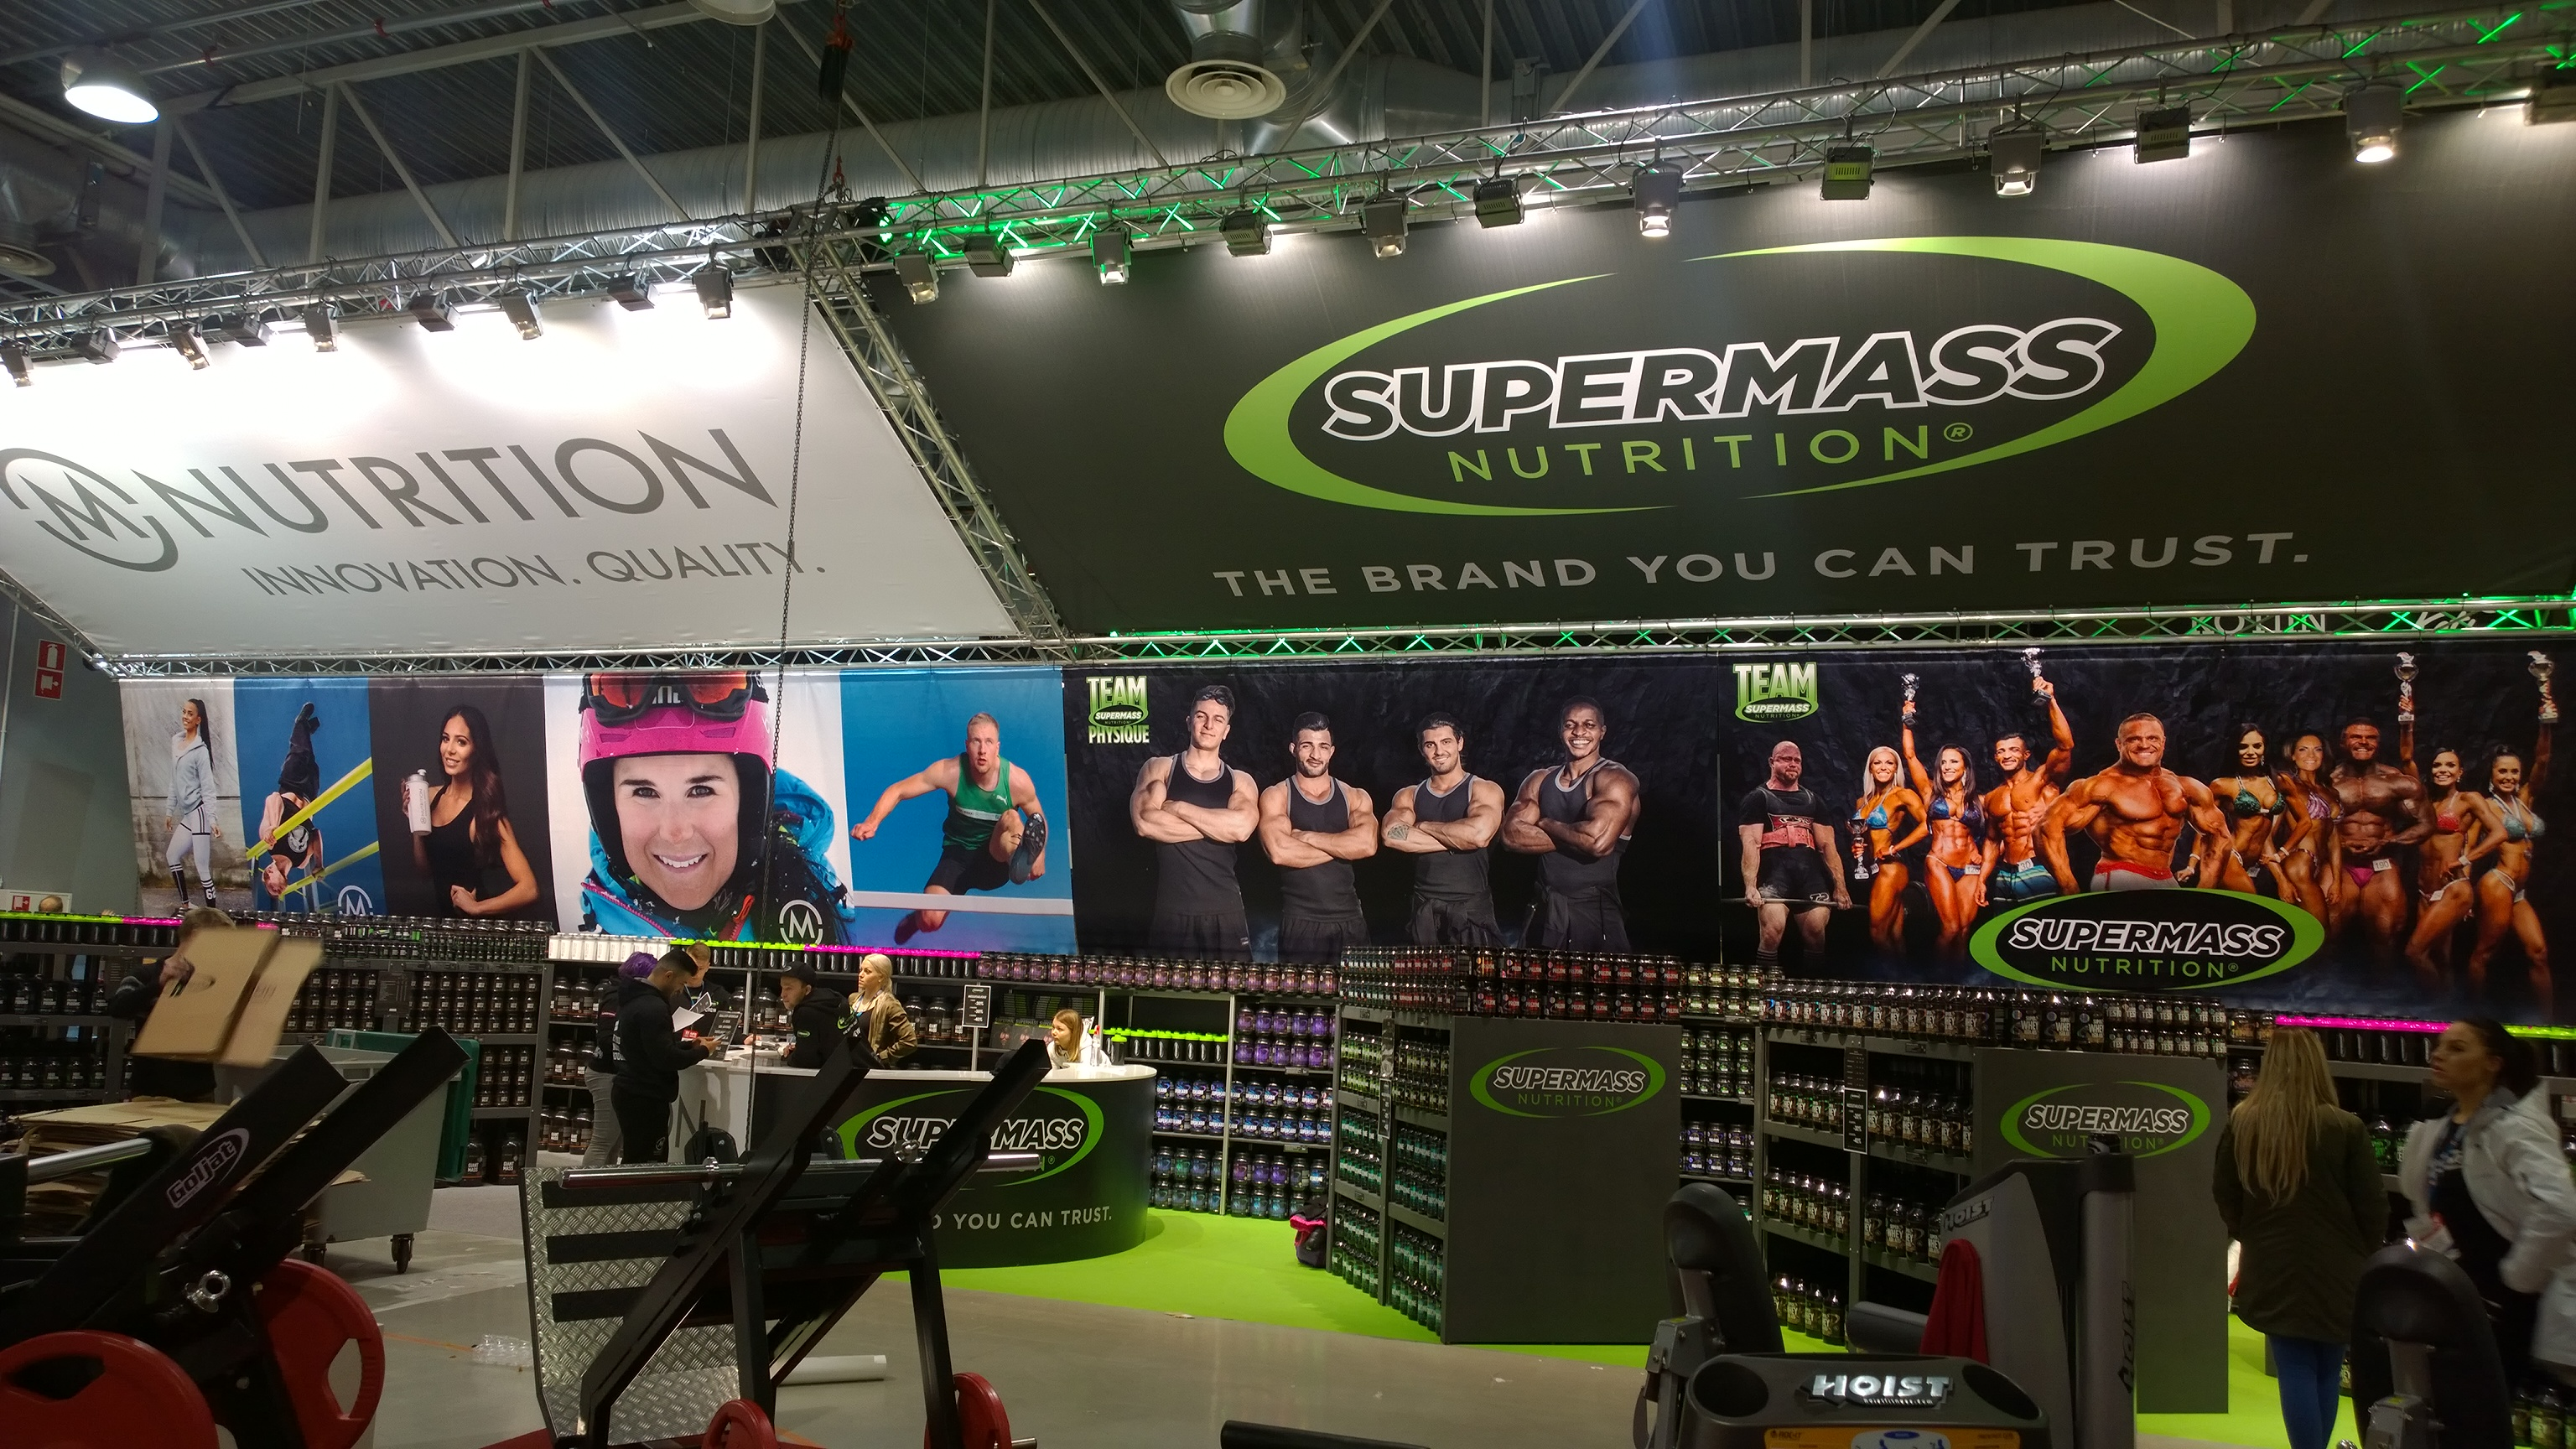 Supermass / M-nutrition